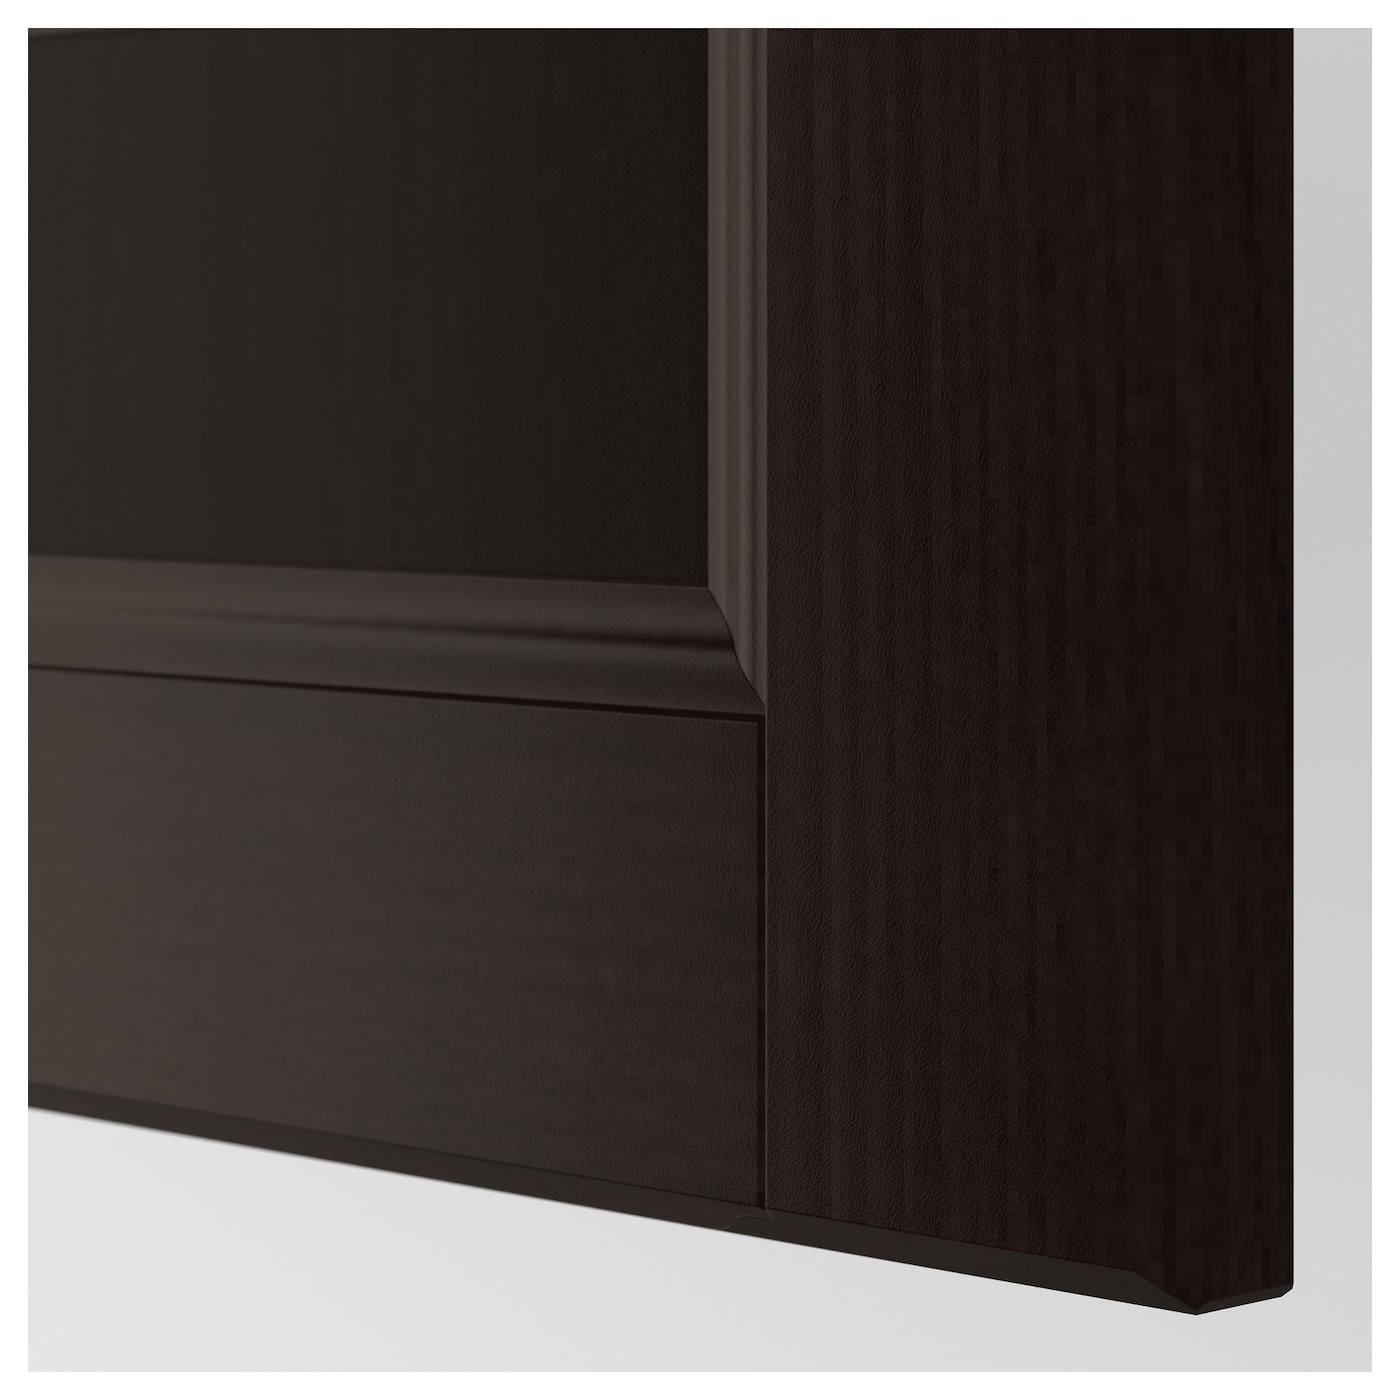 Kitchen Cabinet Door Fronts: LAXARBY Drawer Front Black-brown 80x40 Cm